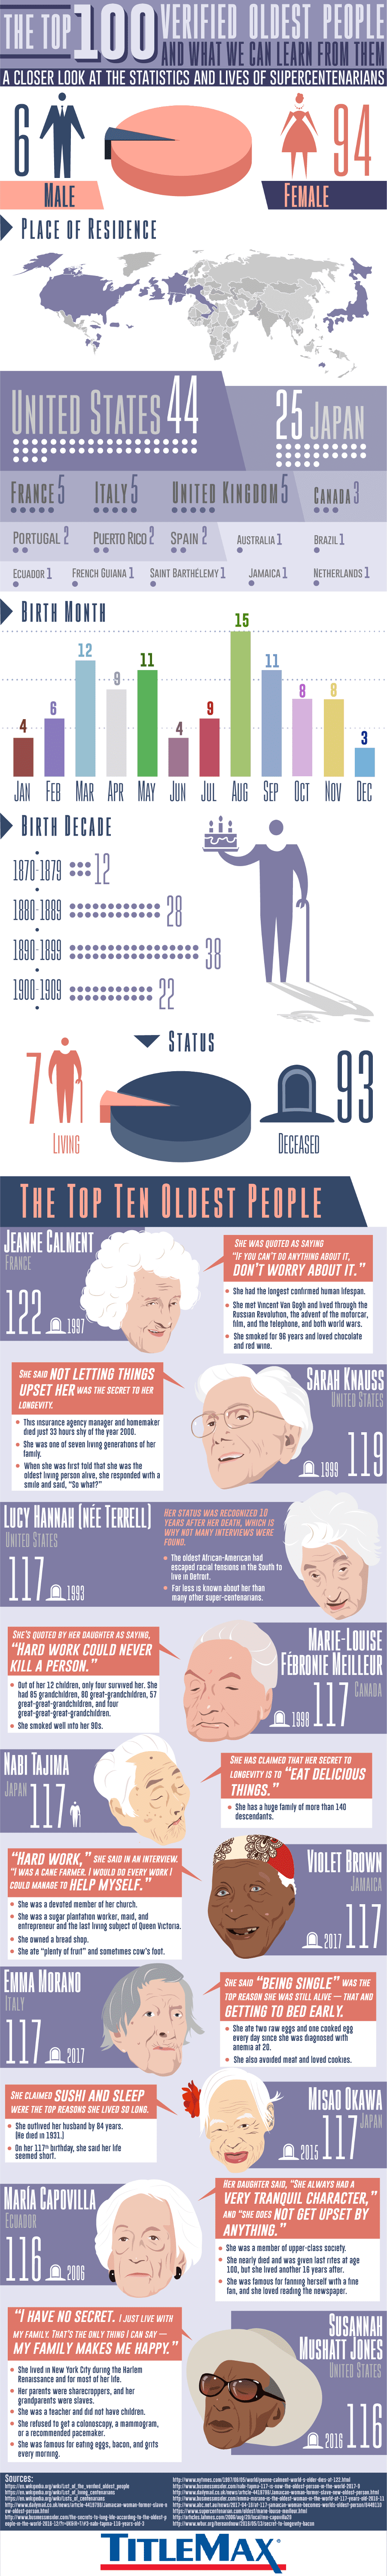 The Top 100 Verified Oldest People and What We Can Learn From Them